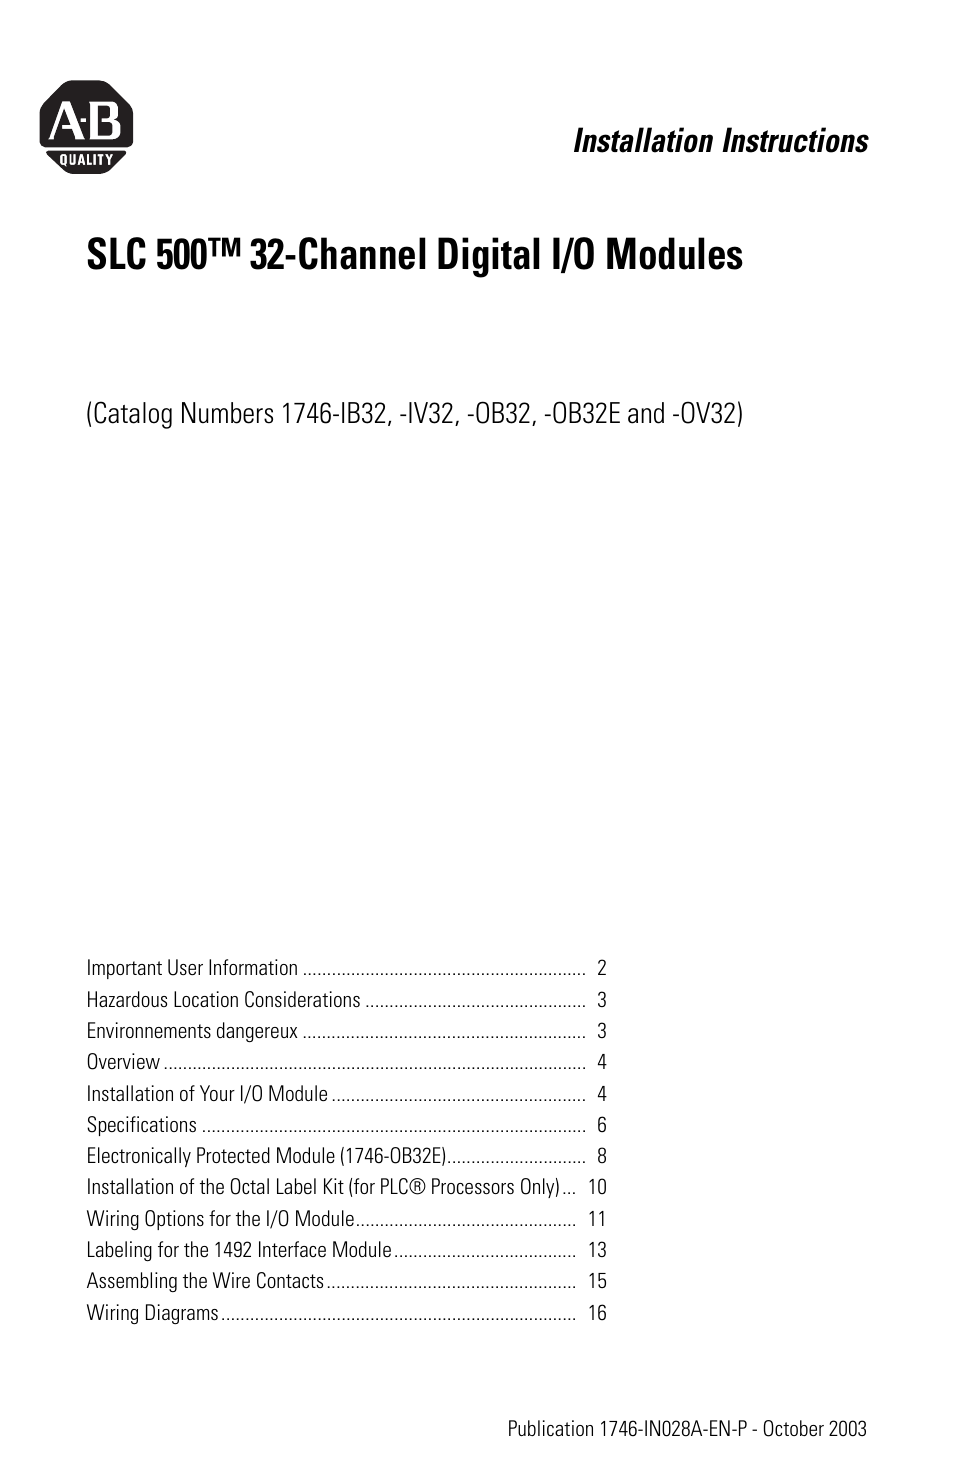 Rockwell Automation 1746 Xxxx Slc 500 32 Channel Digital I O Modules Ab Plc Wiring Diagram Installation Instructions User Manual 20 Pages